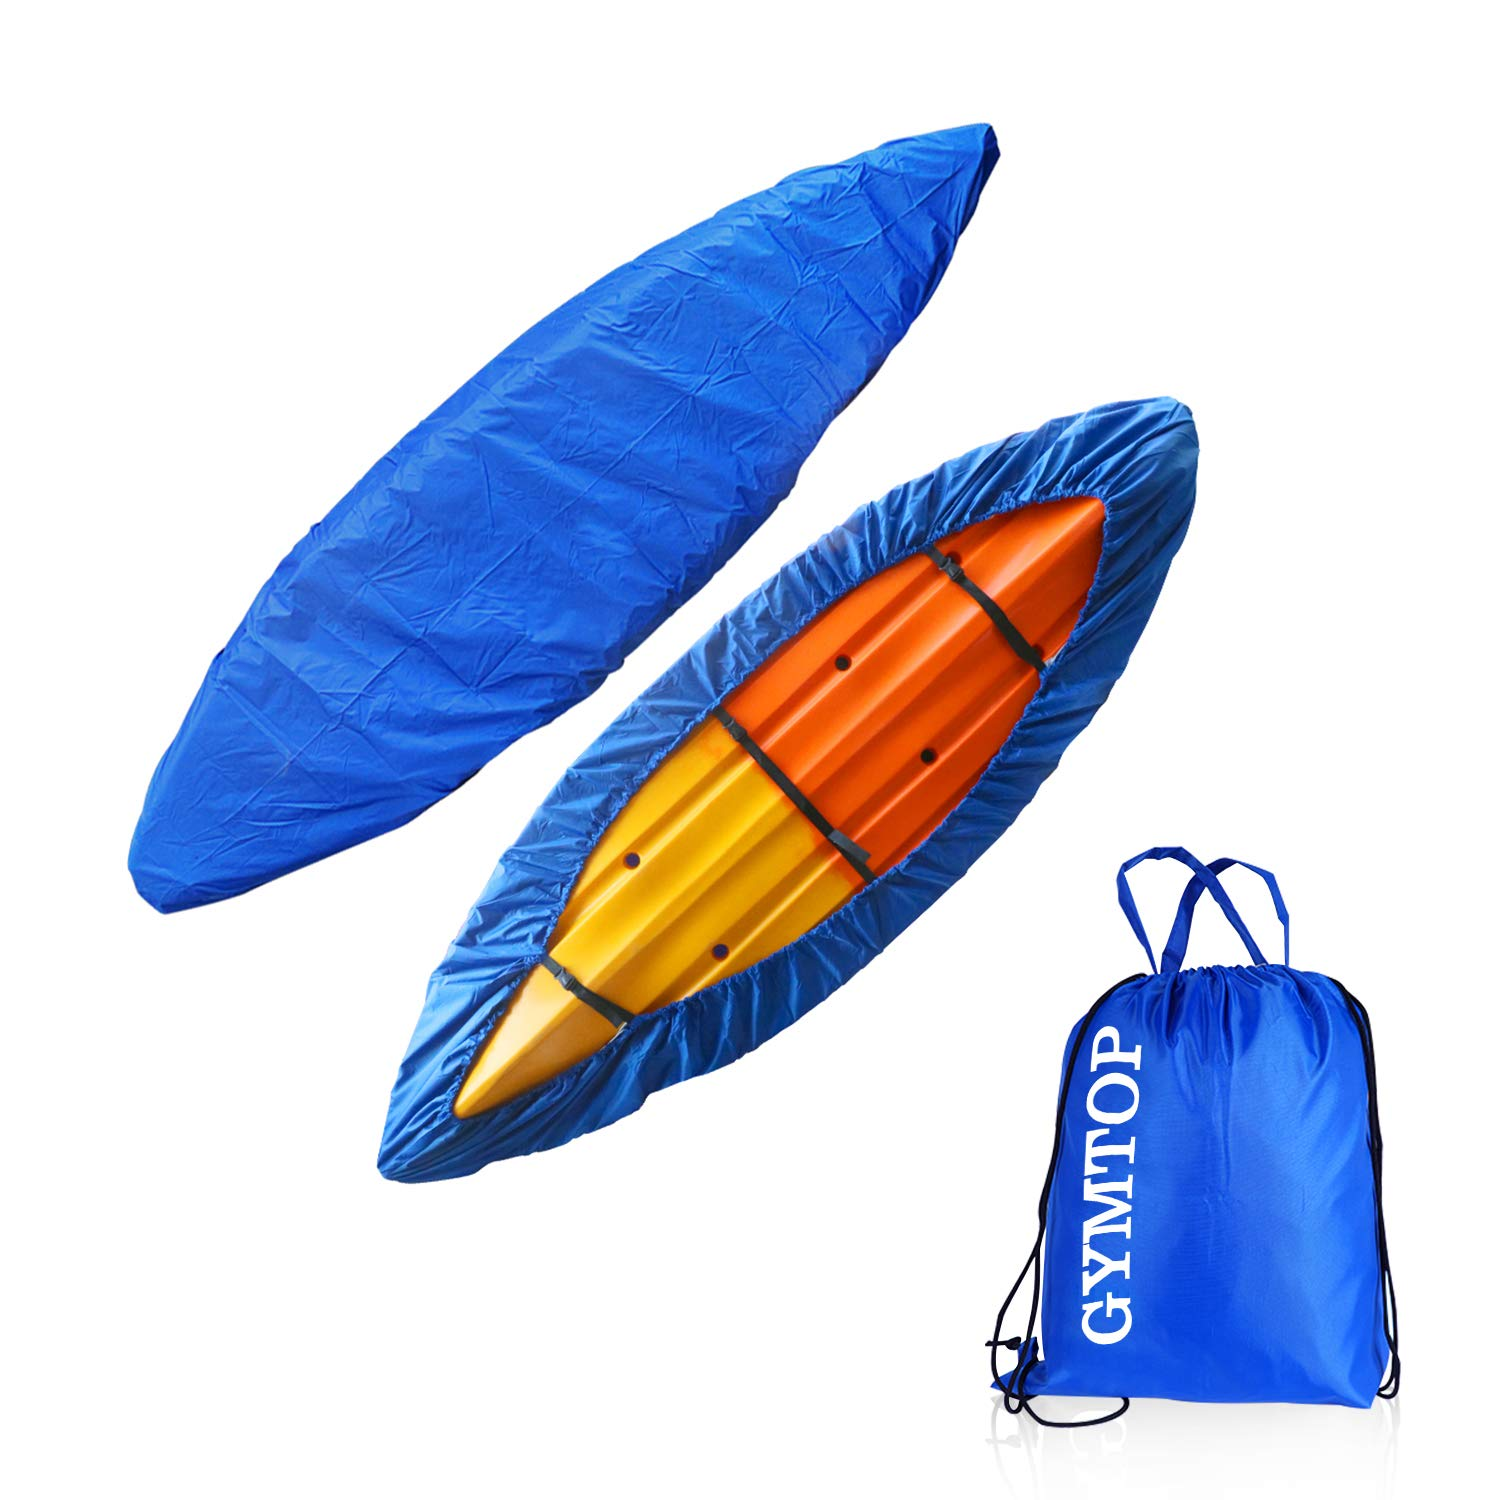 GYMTOP 7.8-18ft Waterproof Kayak Canoe Cover Storage Dust Cover UV Protection Sunblock Shield for Fishing Boat/Kayak/Canoe 7 Sizes [Choose Color] (Dark Blue(Upgraded), Suitable for 12.3-13.5ft Kayak) by GYMTOP